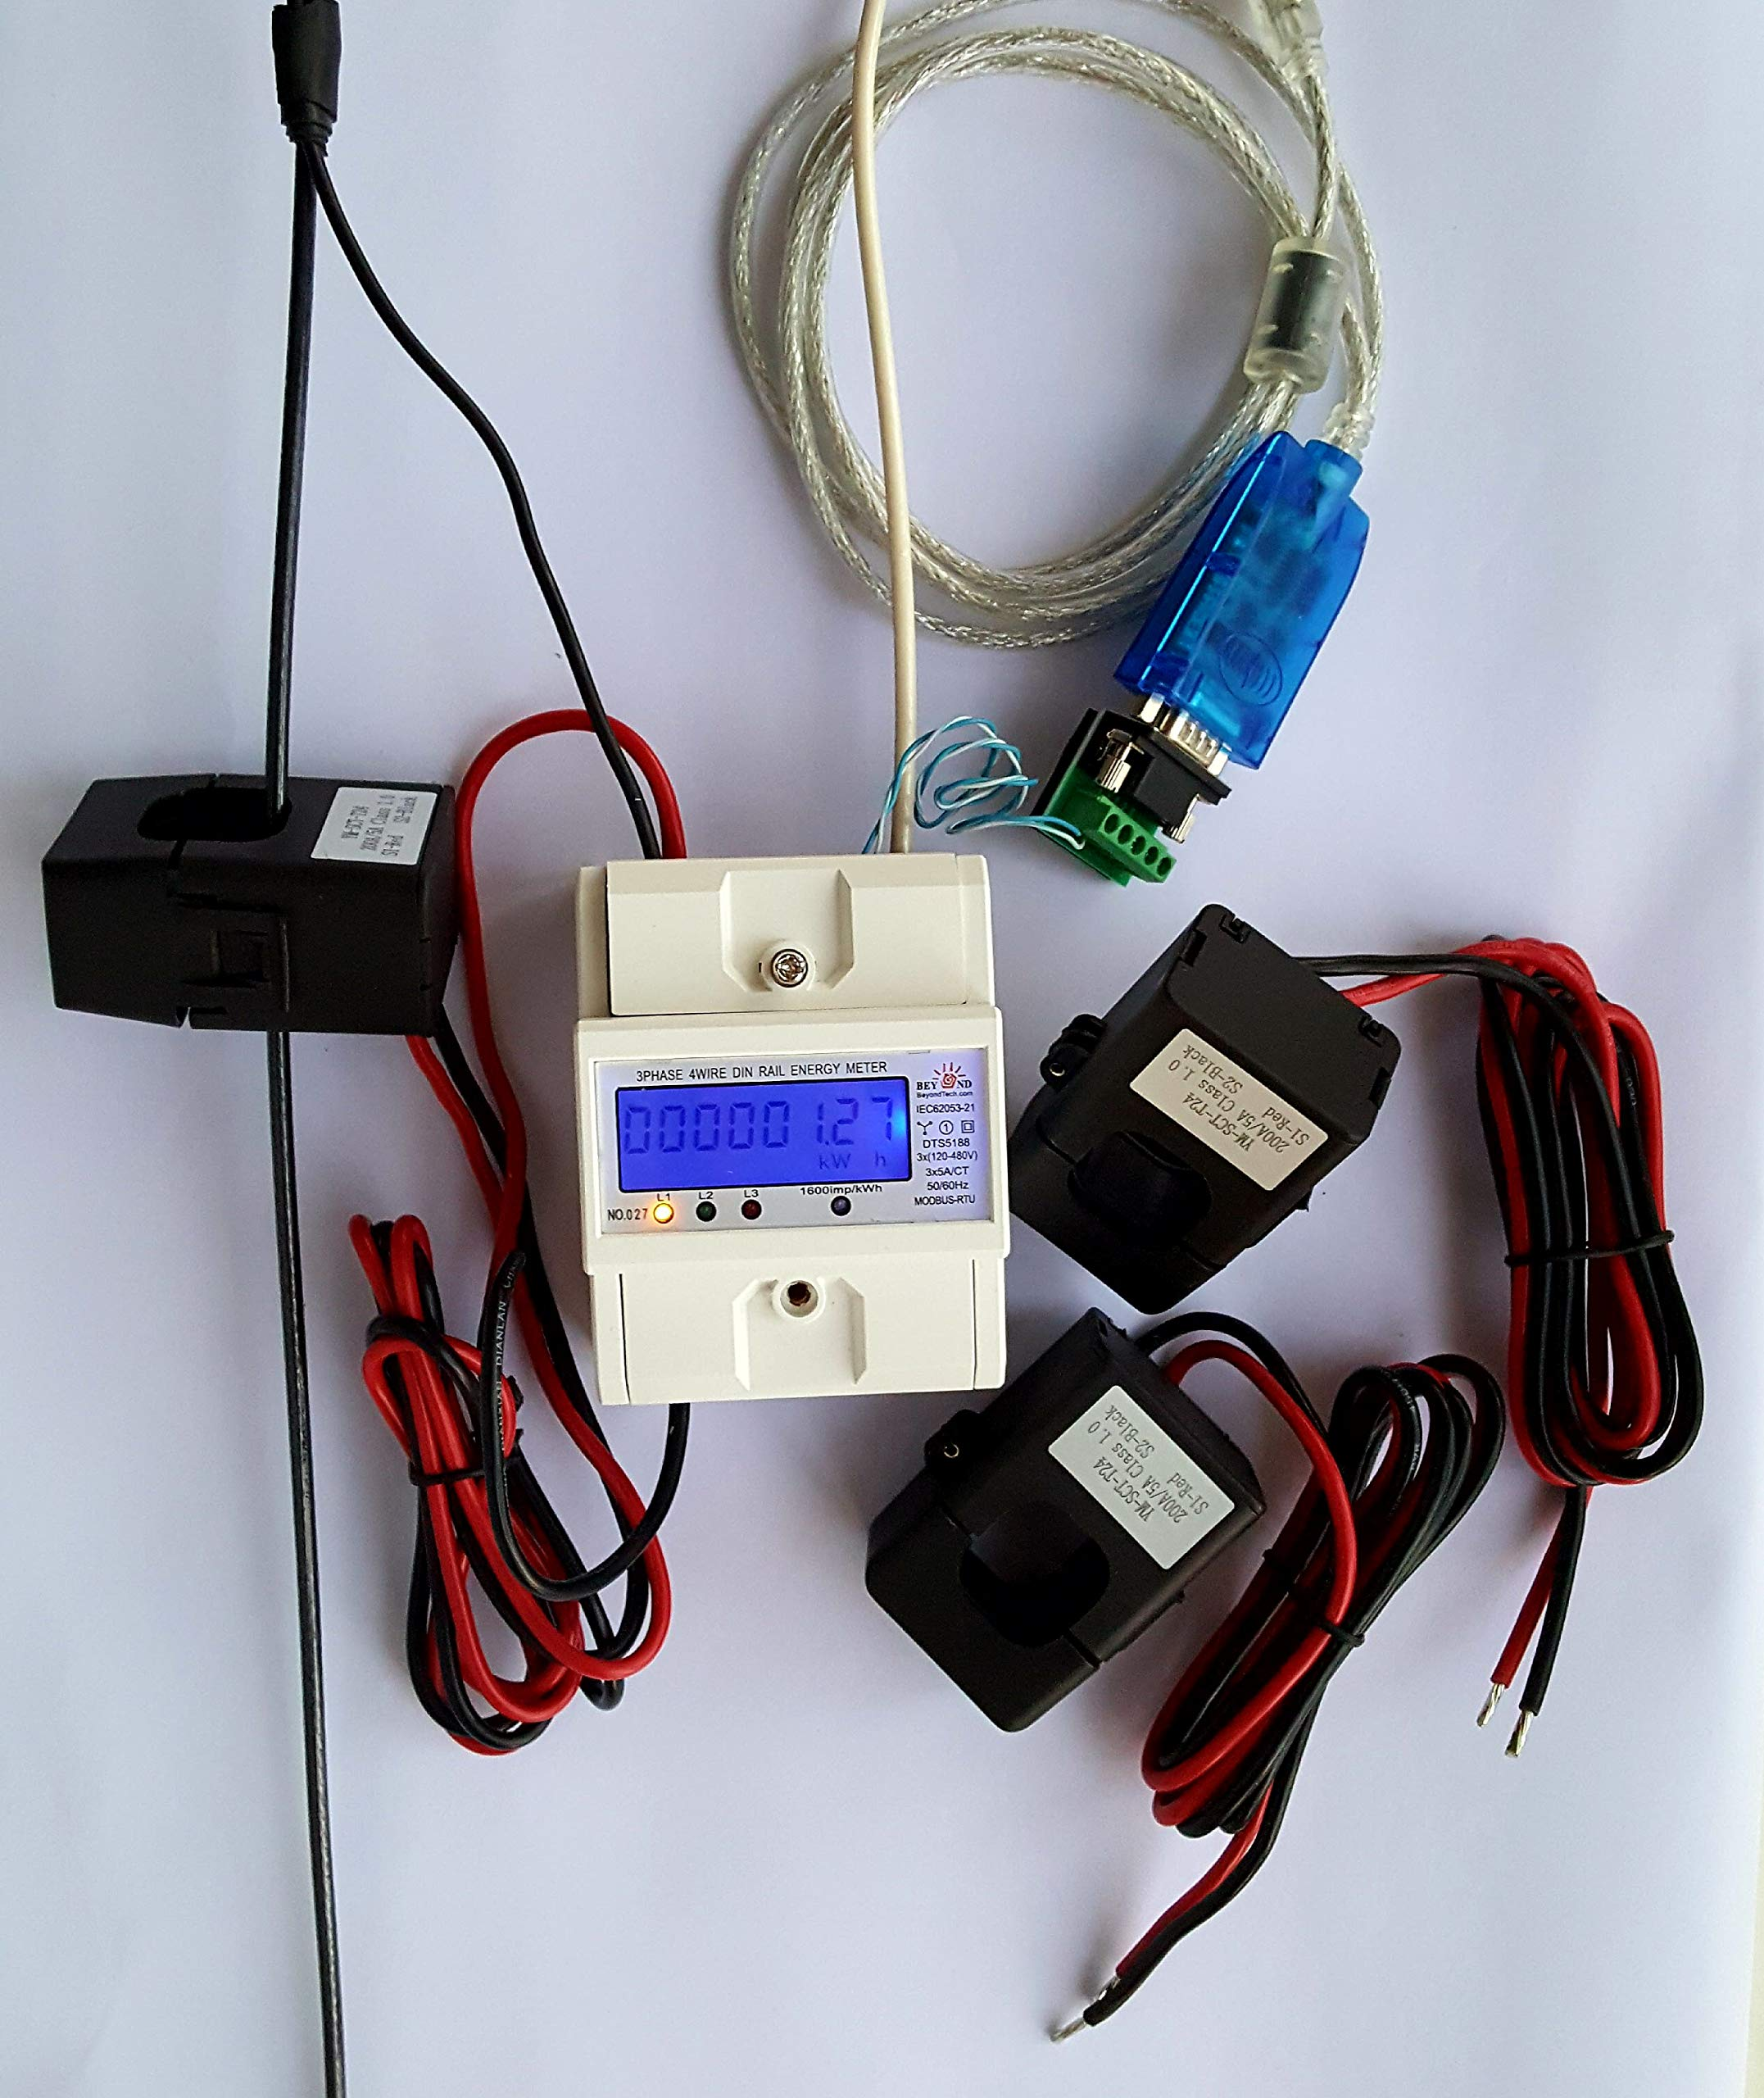 Smart energy meter 1 2 or 3 phase 120V/480V. 2x200:5 Amps included by BeyondTech.com (Image #6)